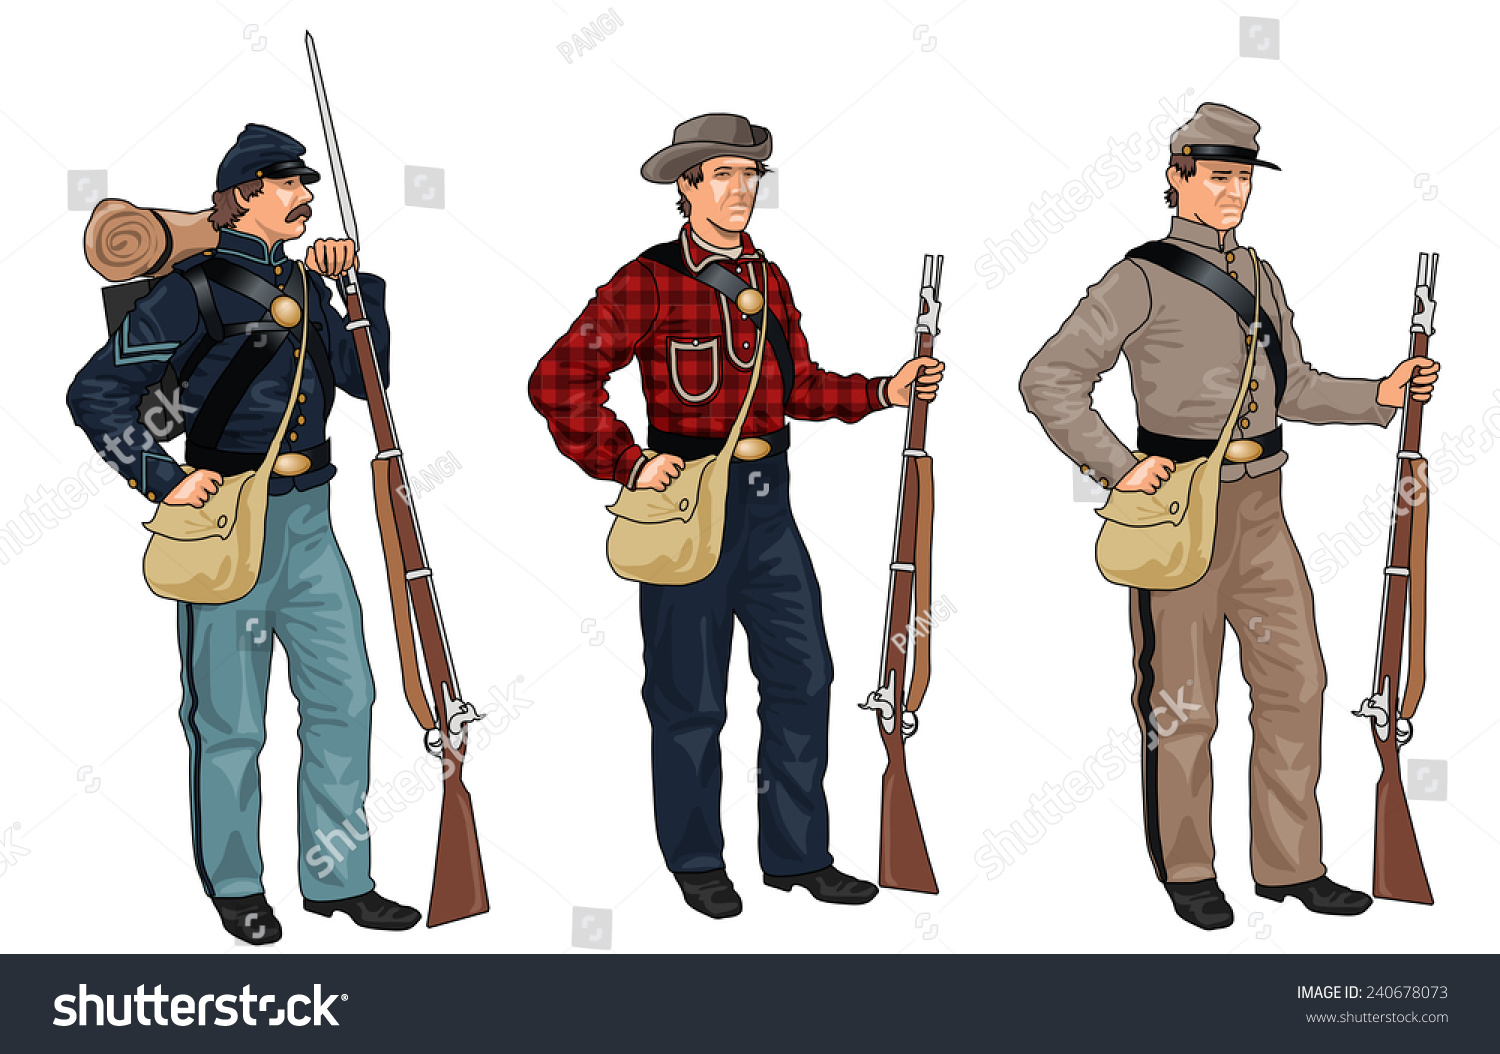 Set Of Three Sol Rs In Uniforms From American Civil War On White Background Stock Photo